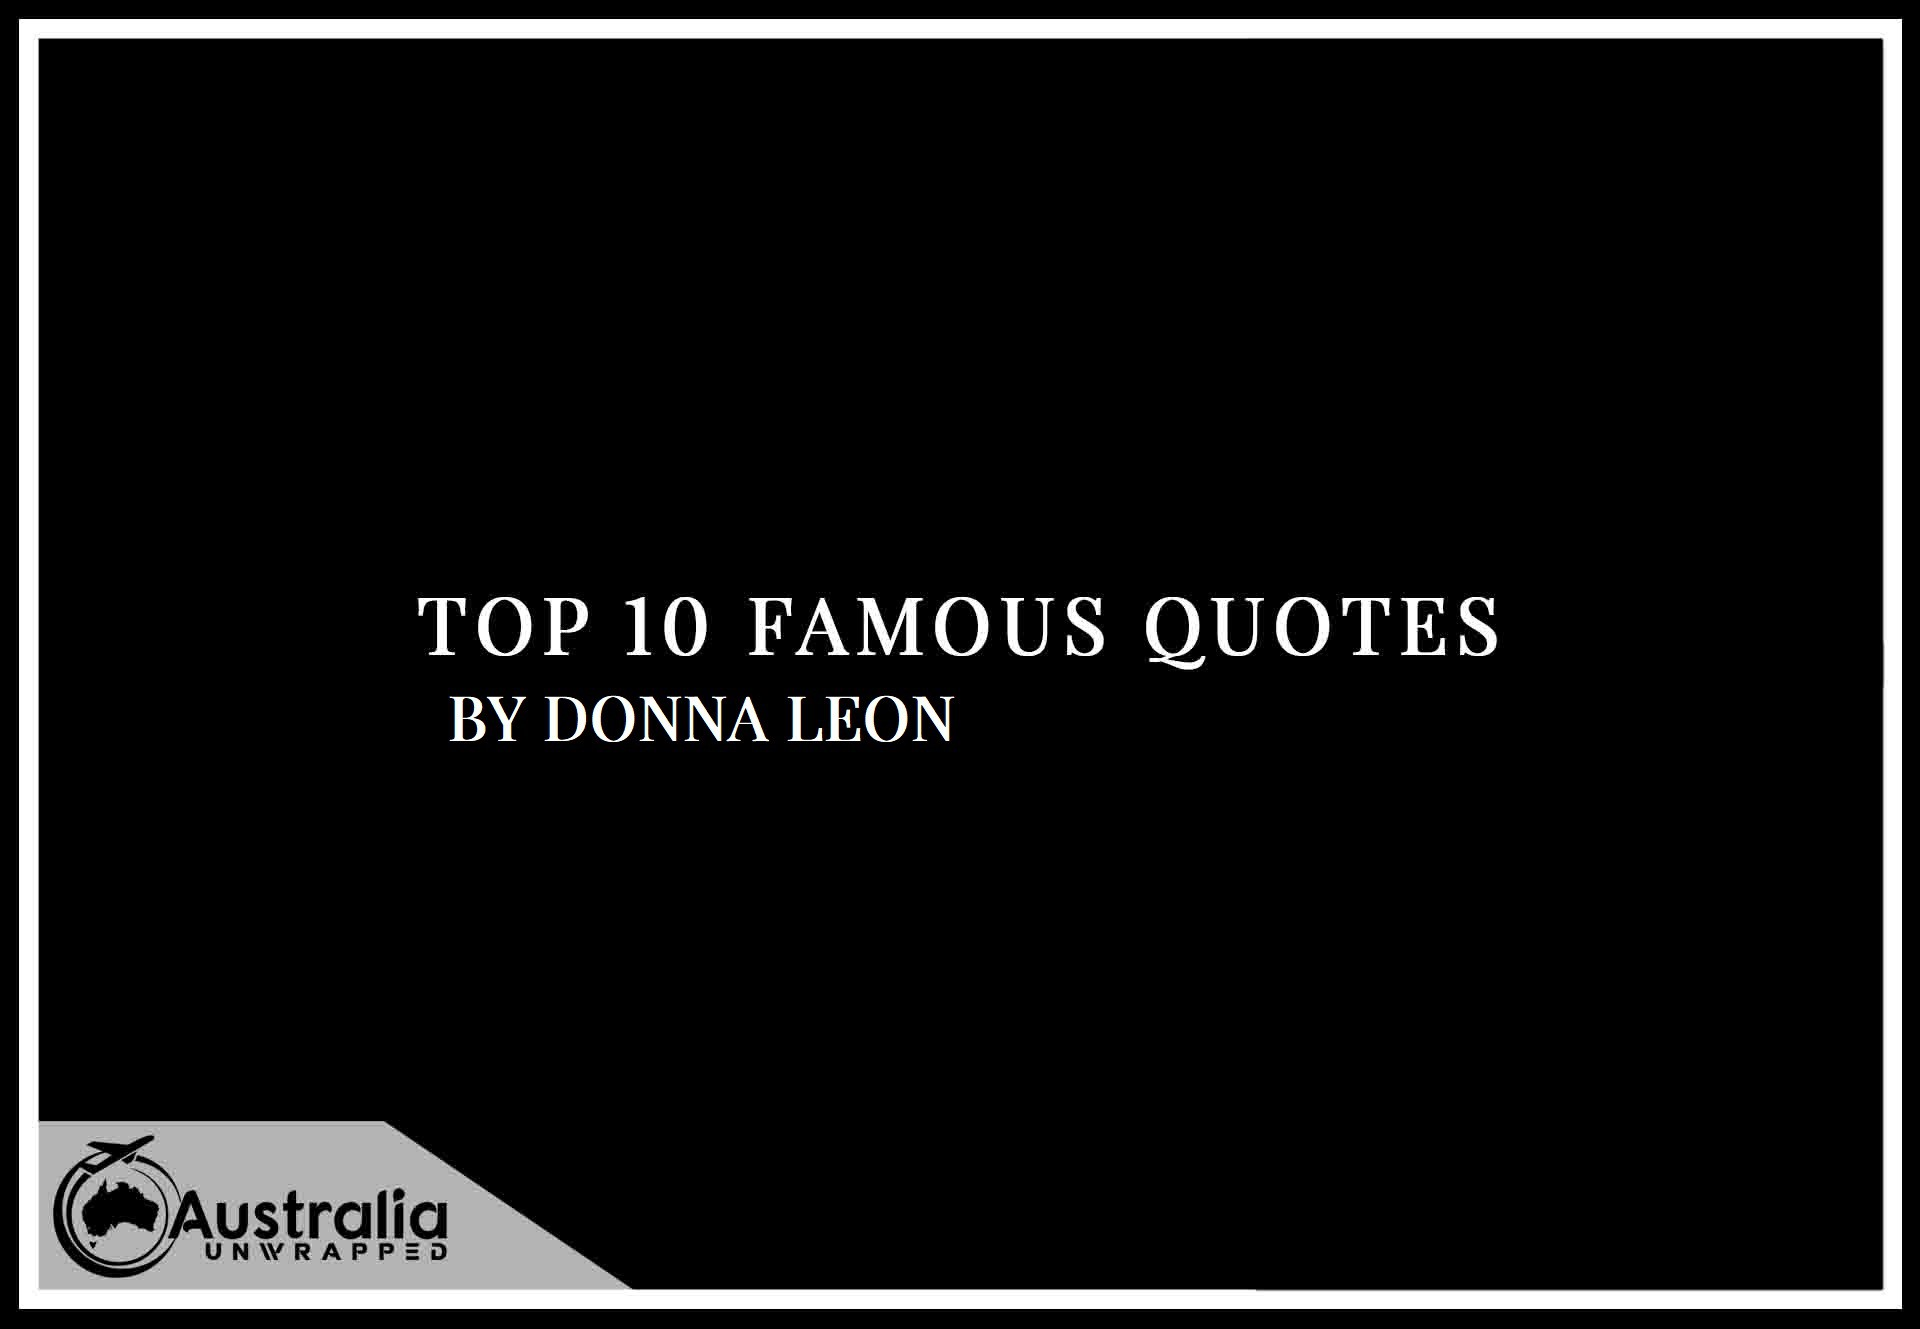 Top 10 Famous Quotes by Author Donna Leon